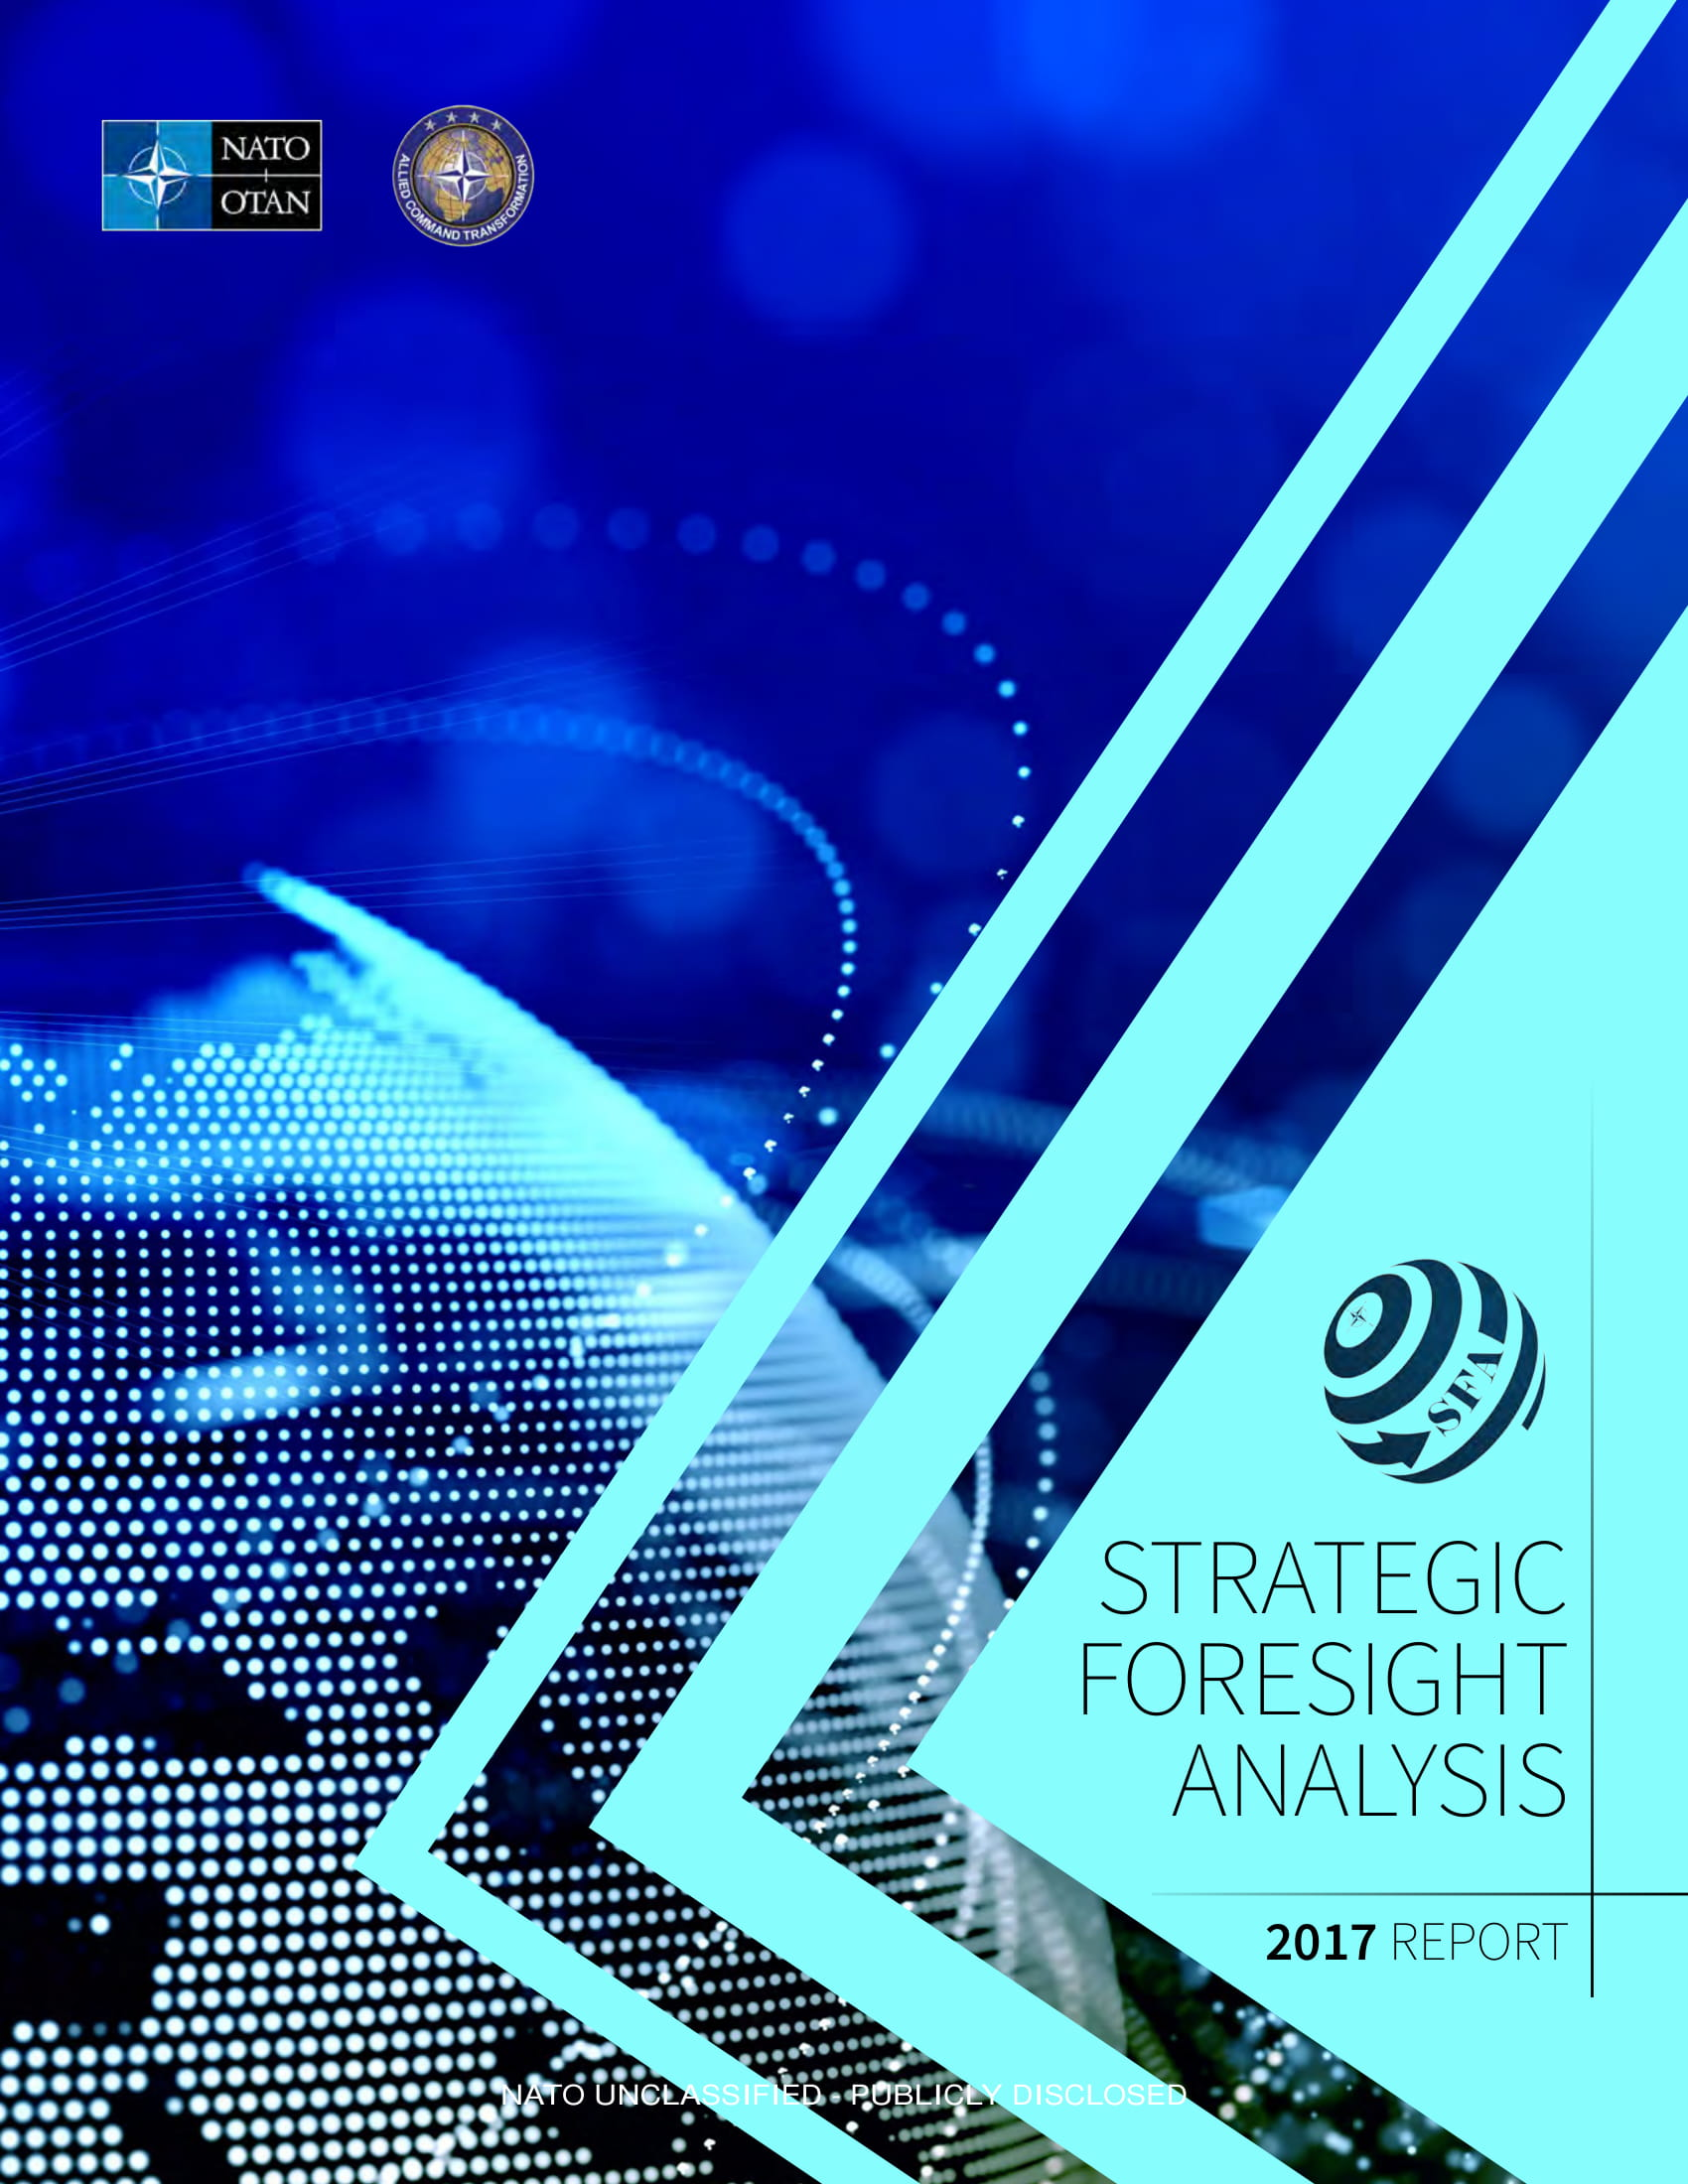 strategic analysis report example